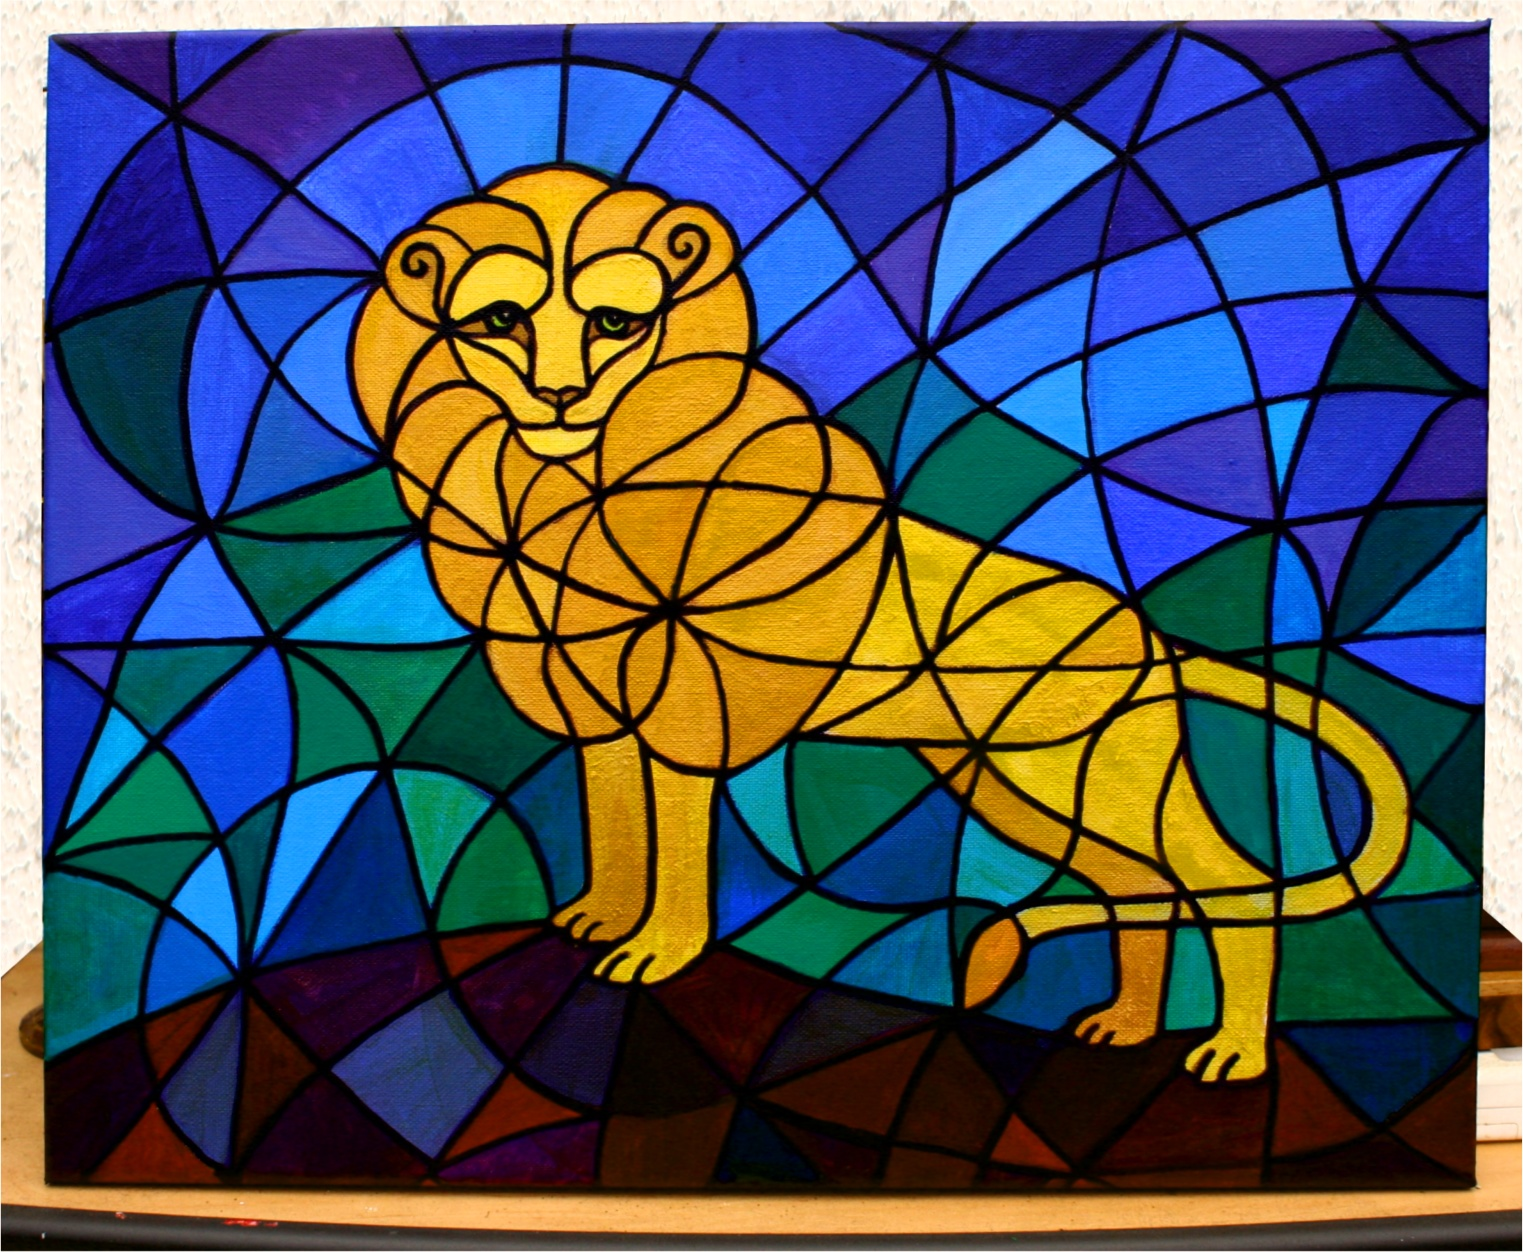 Leo Painting - The Original Leo Symbol Hybrid Painting by SFX